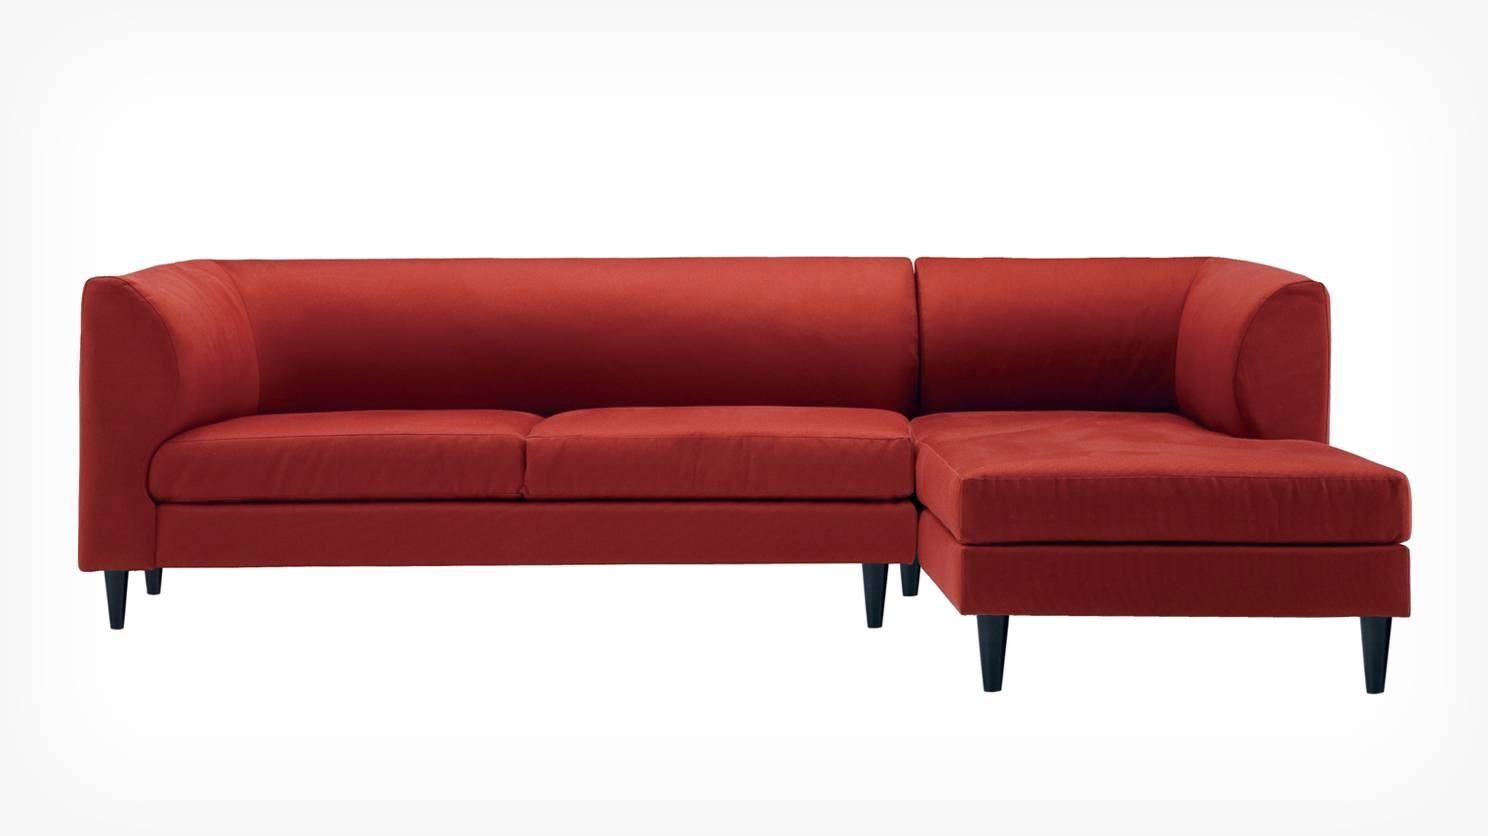 Eq3 | Living > Seating > Sectionals intended for 2 Seat Sectional Sofas (Image 7 of 30)